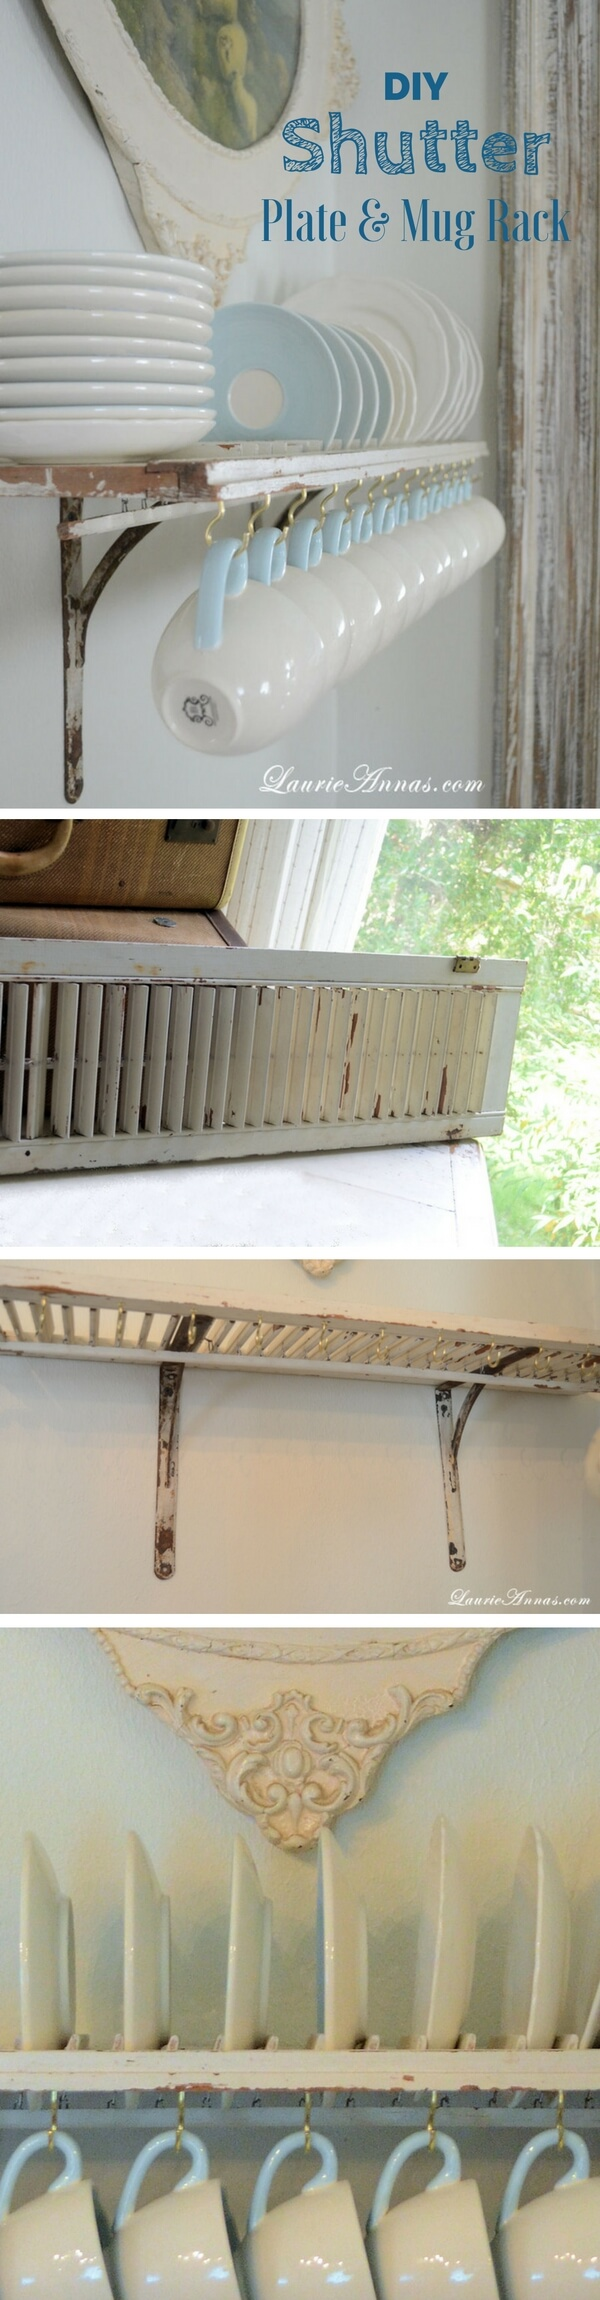 Plate and Mug Rack from a Reclaimed Shutter